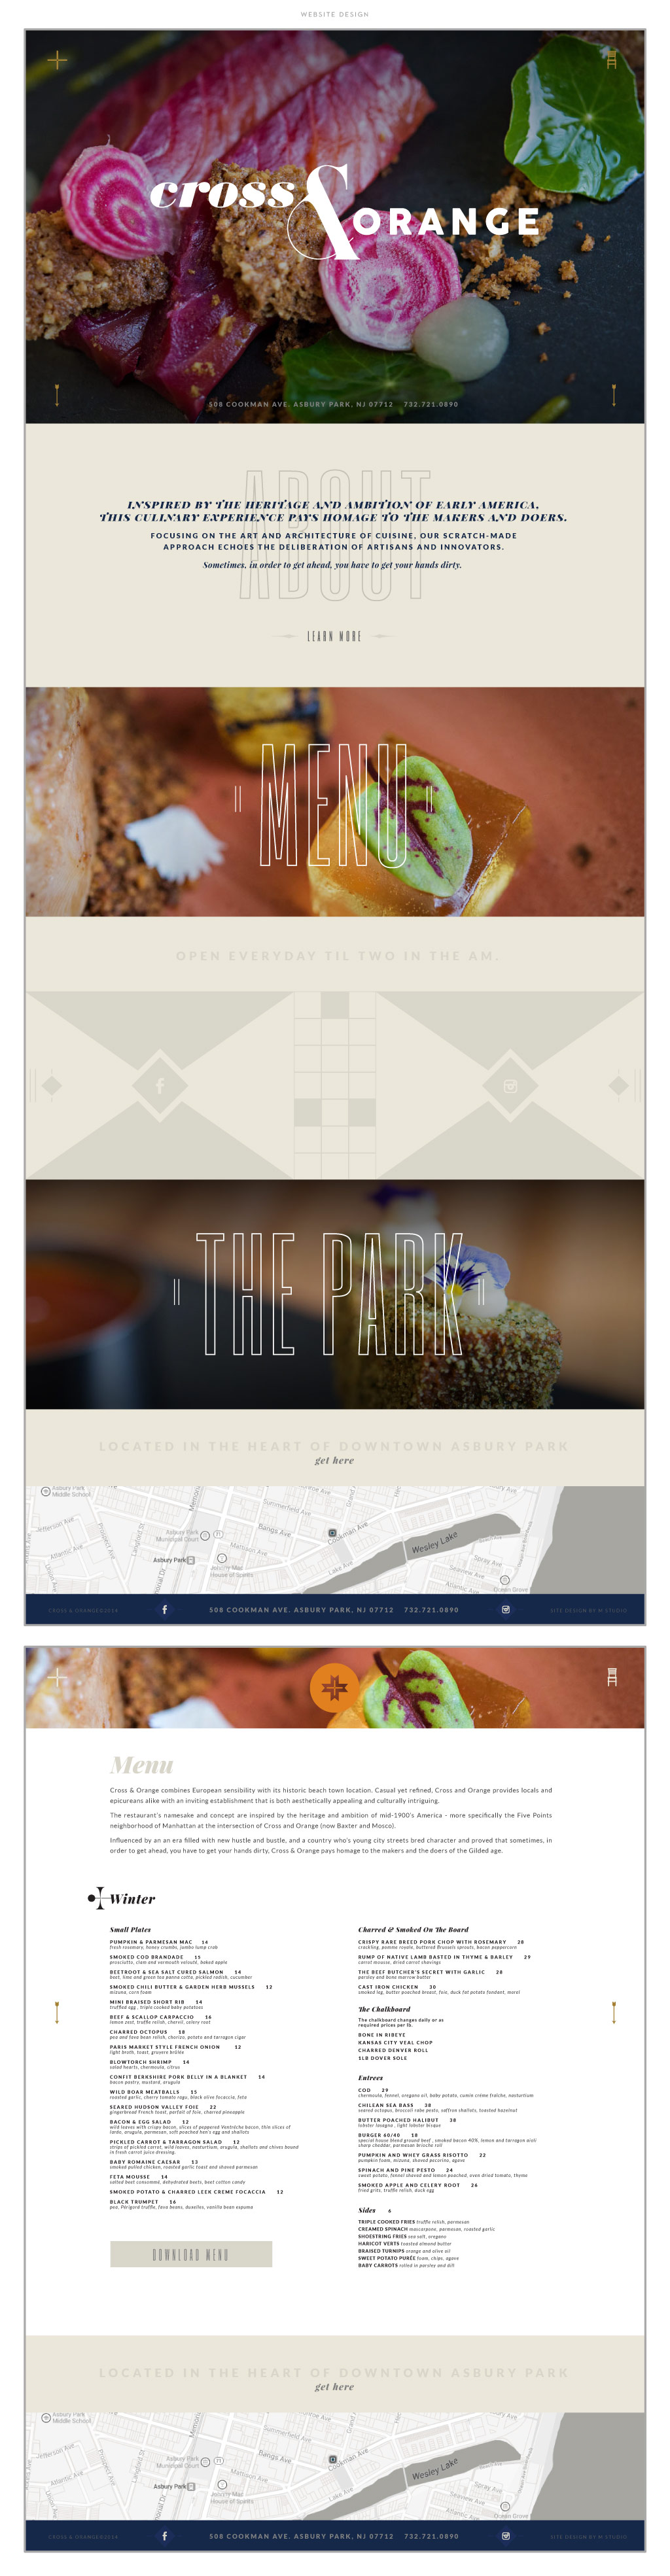 Cross & Orange web design by M studio